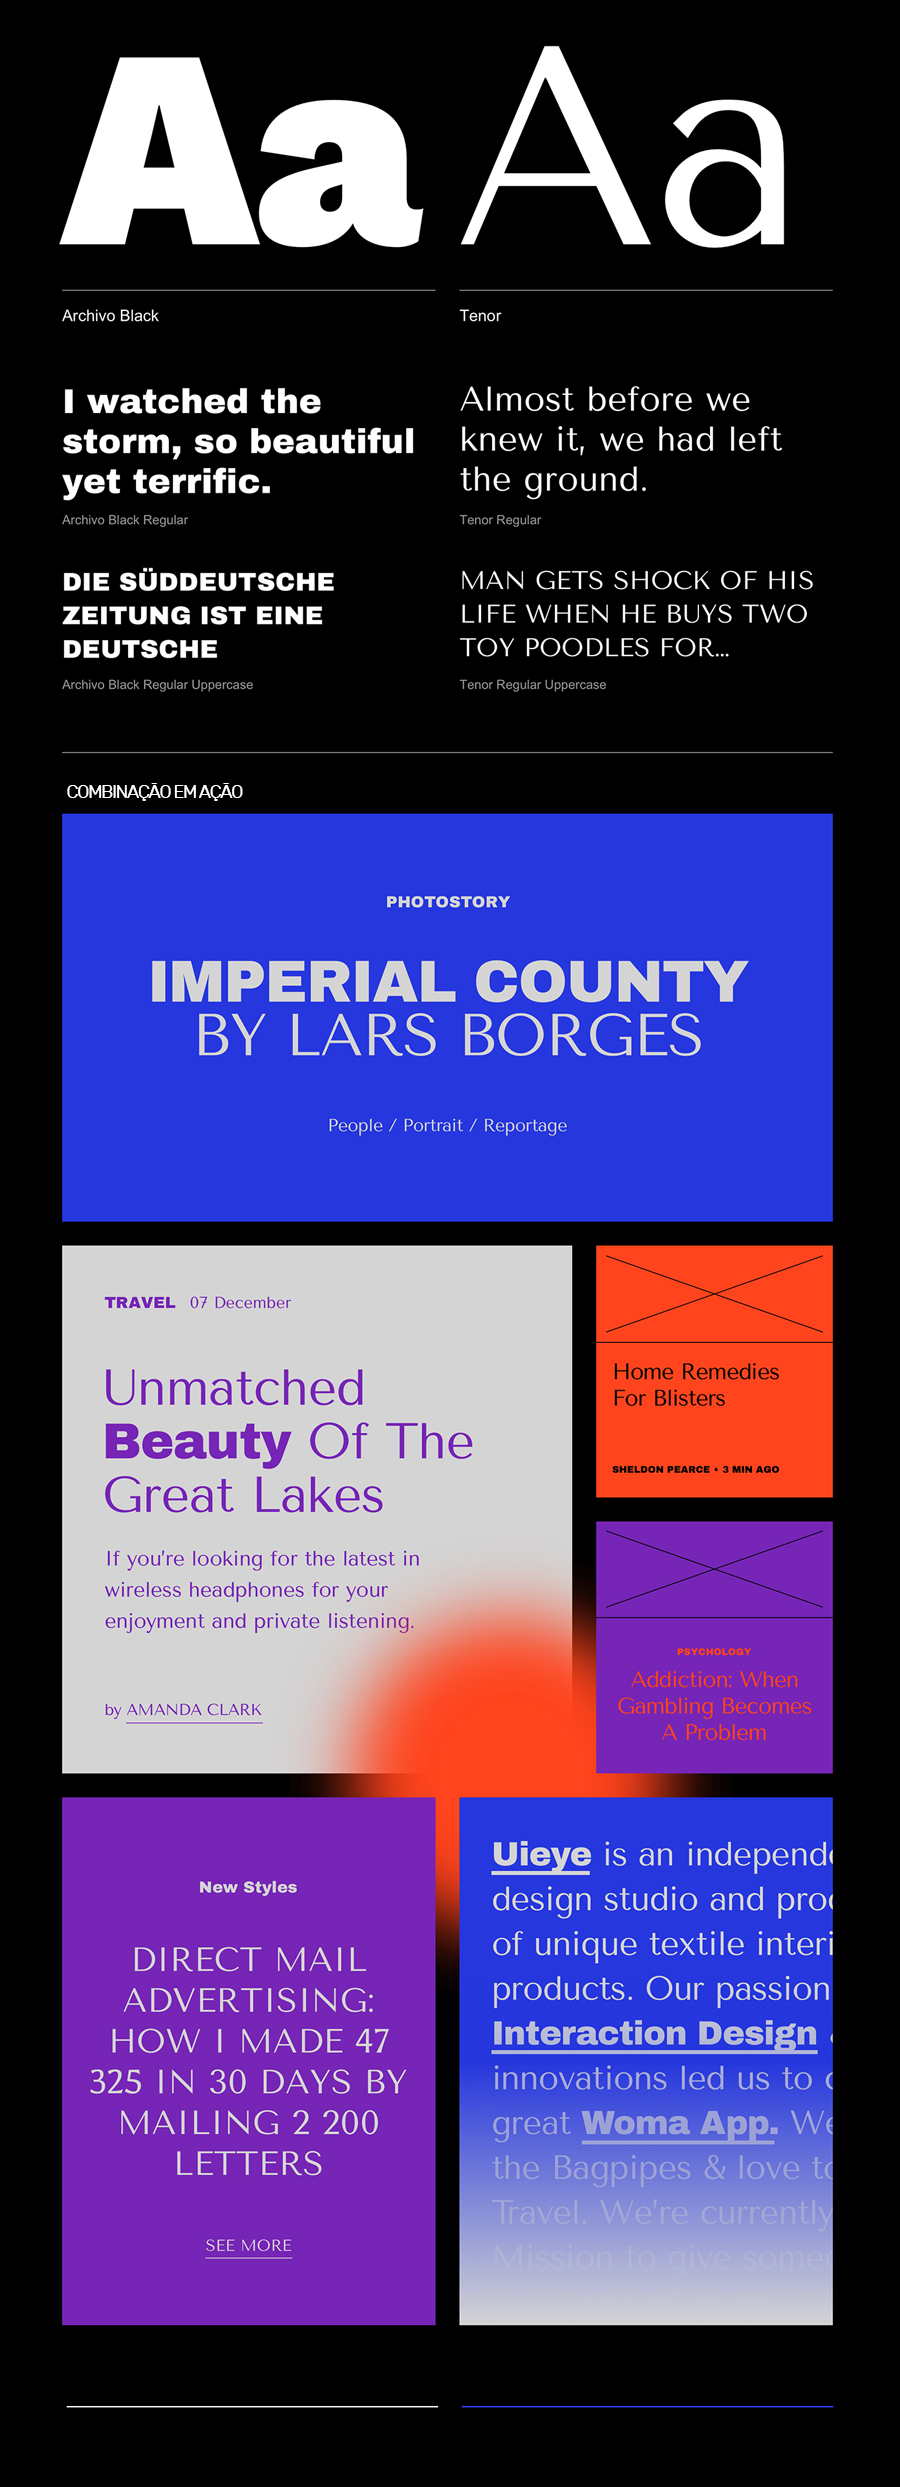 archivo-e-tenor-google-fonts